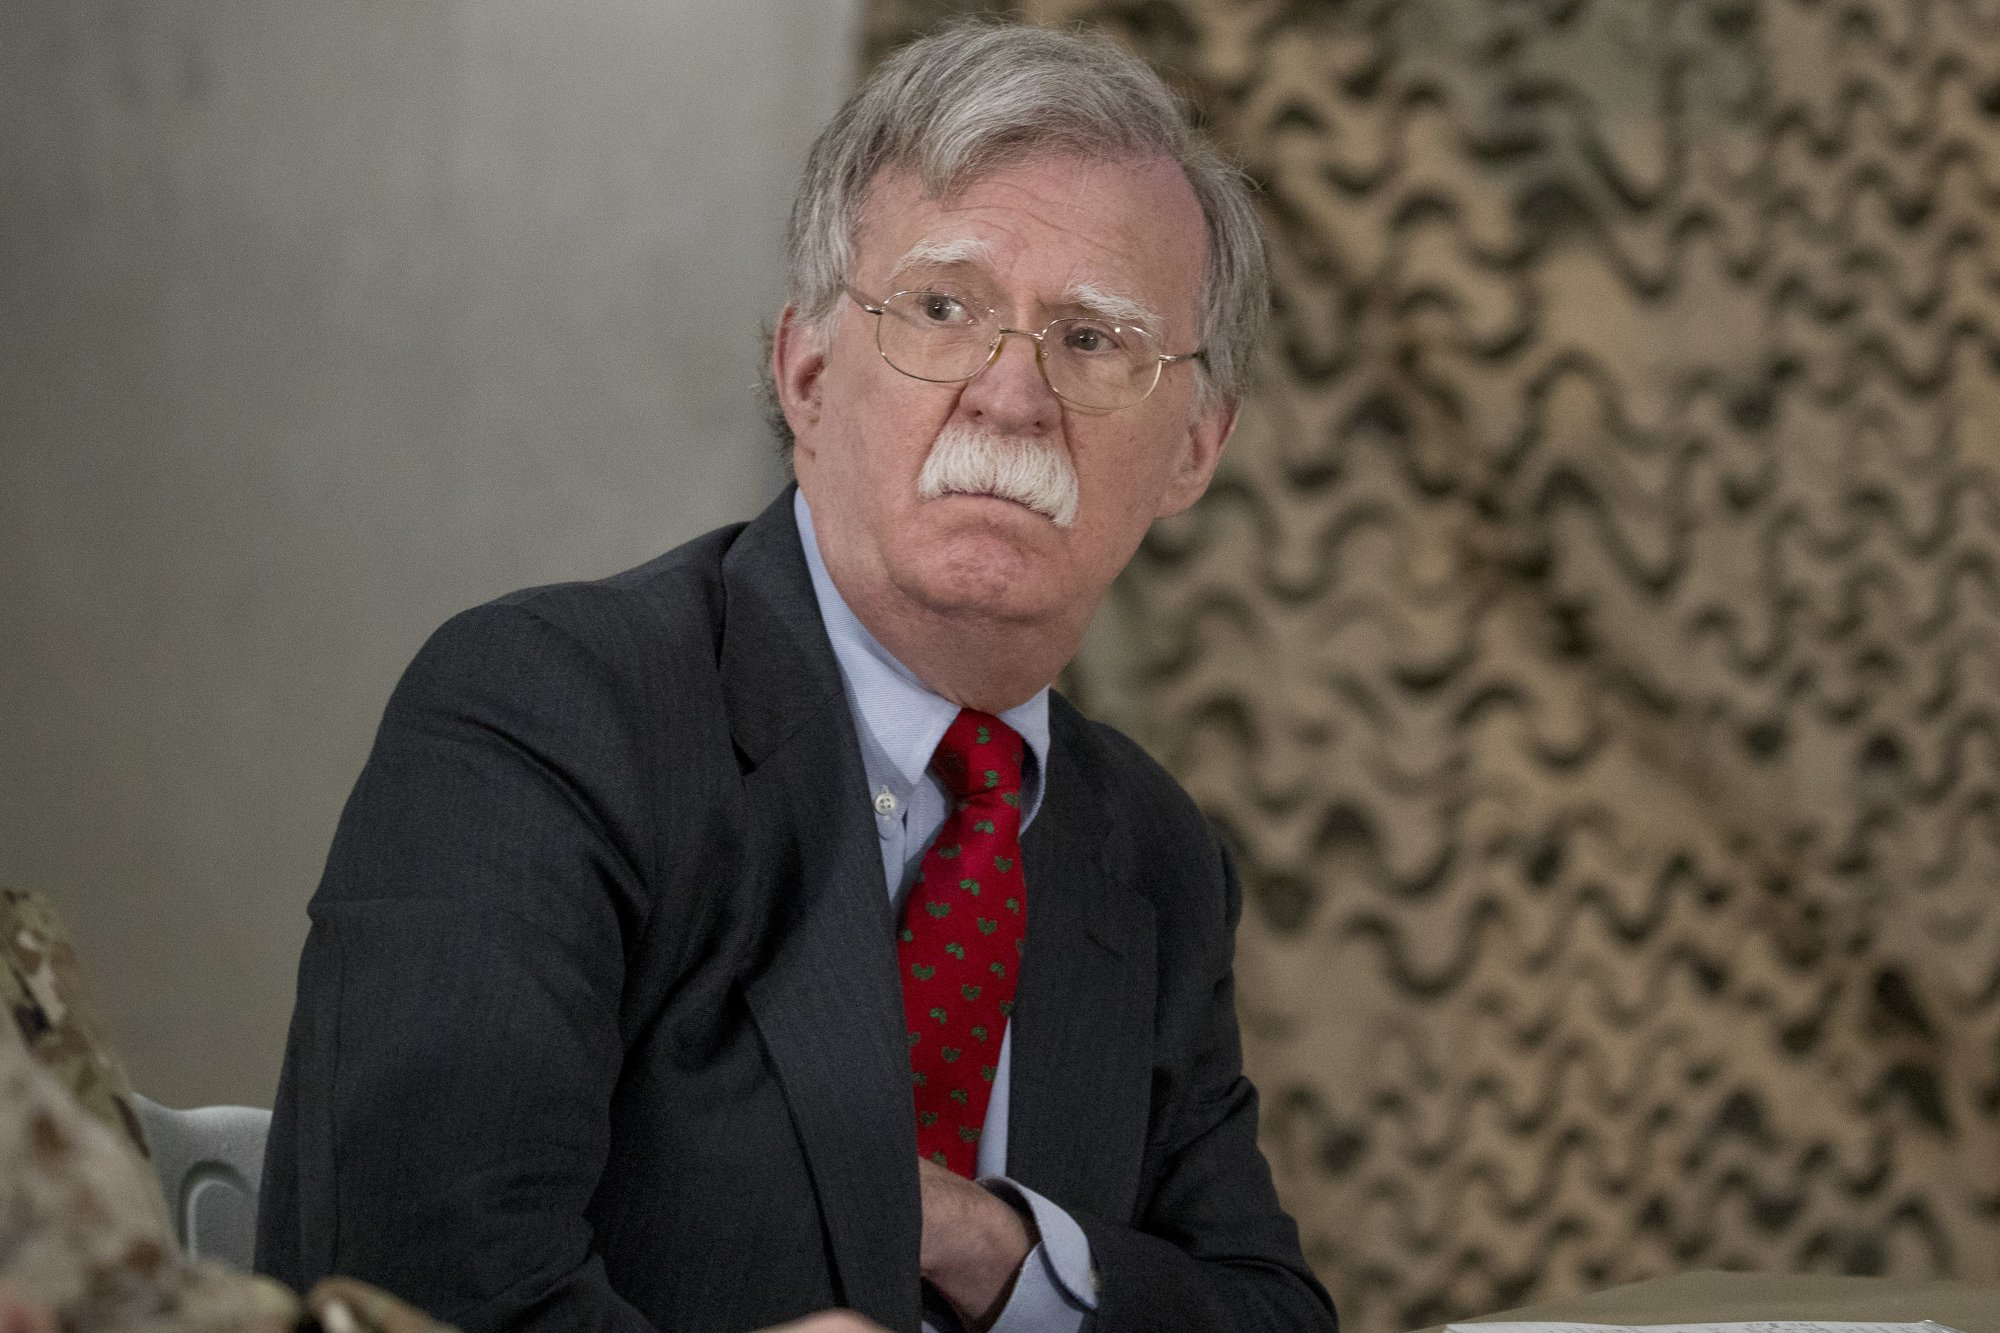 National Security Adviser John Bolton attends a meeting with President Donald Trump and senior military leadership at Al Asad Air Base, Iraq, Wednesday, Dec. 26, 2018. President Donald Trump made an unannounced trip to Iraq on Wednesday to meet U.S. troops. It's the sixth time that a U.S. president has visited Iraq. (AP Photo/Andrew Harnik)